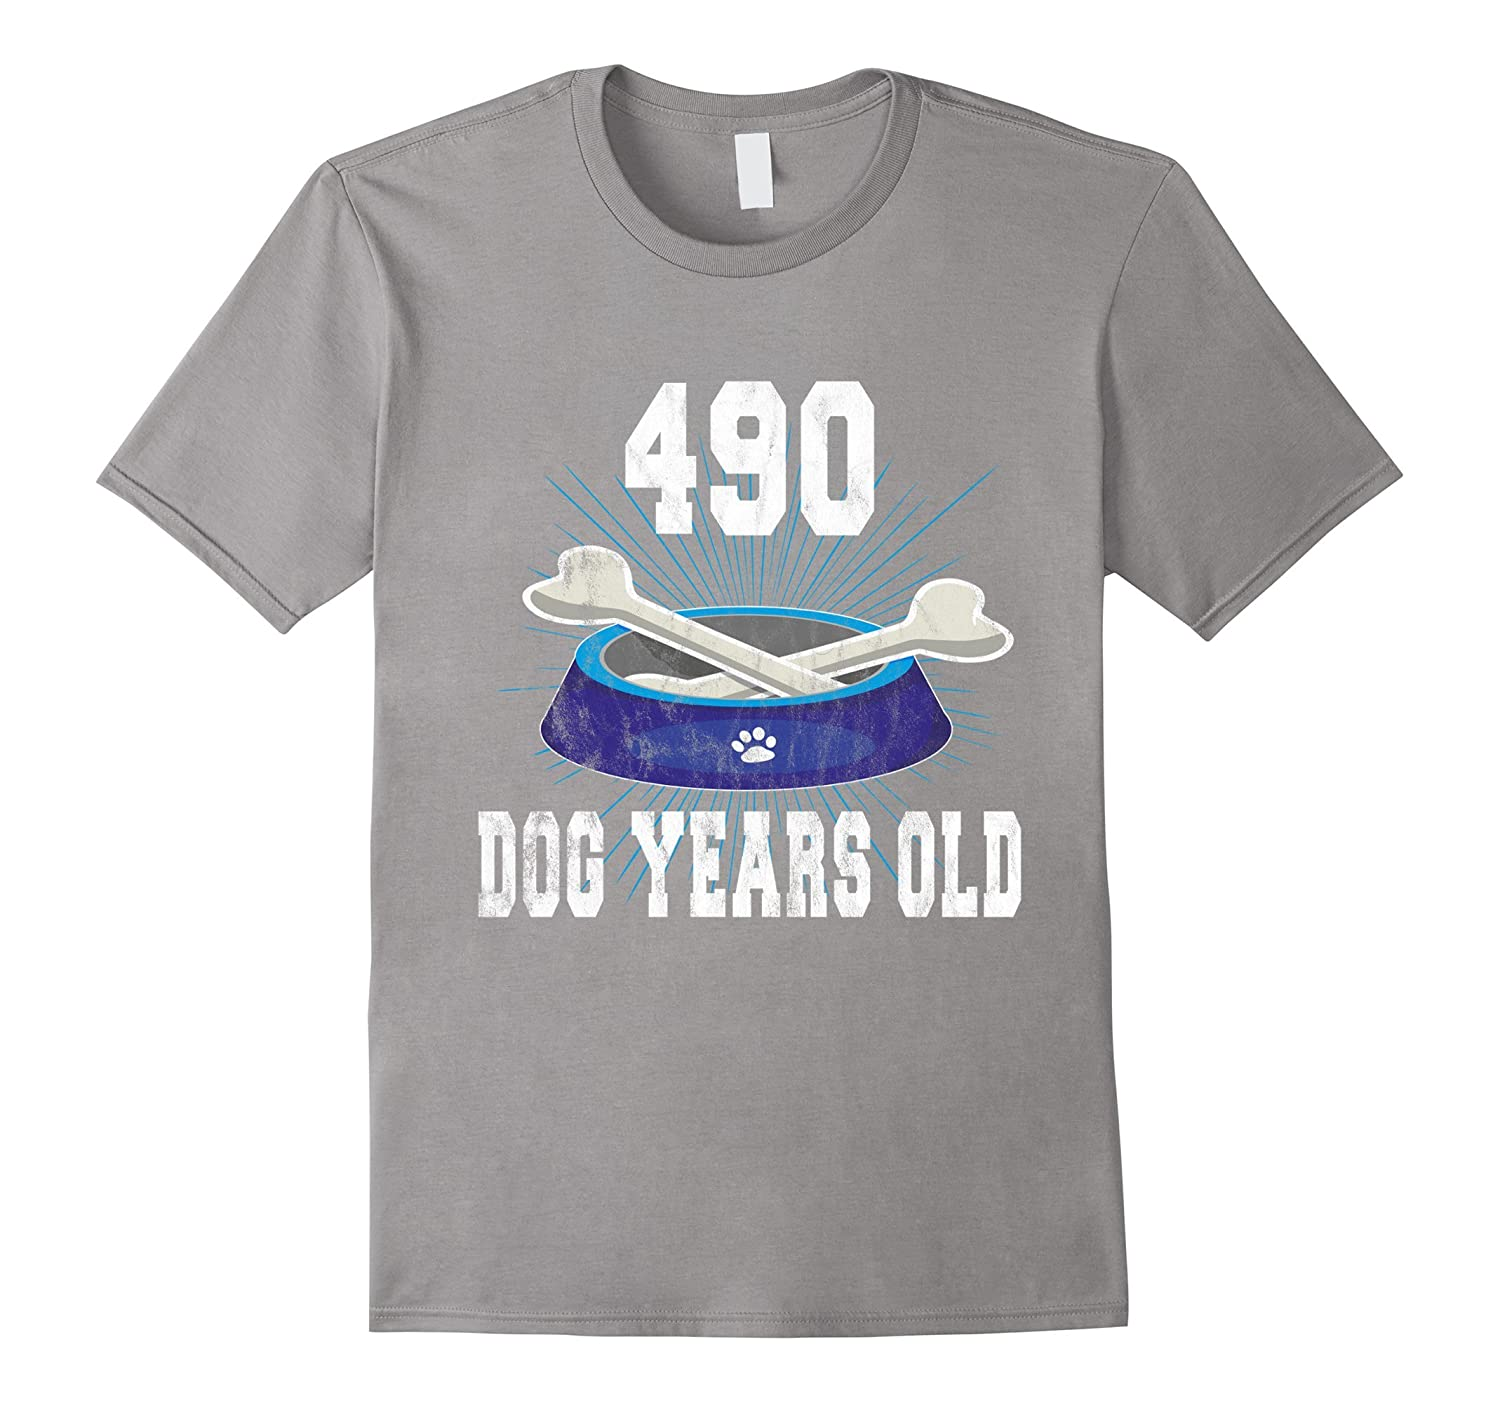 490 Dog Years Old | Funny 70th Birthday Tee For Dog Lovers-TH